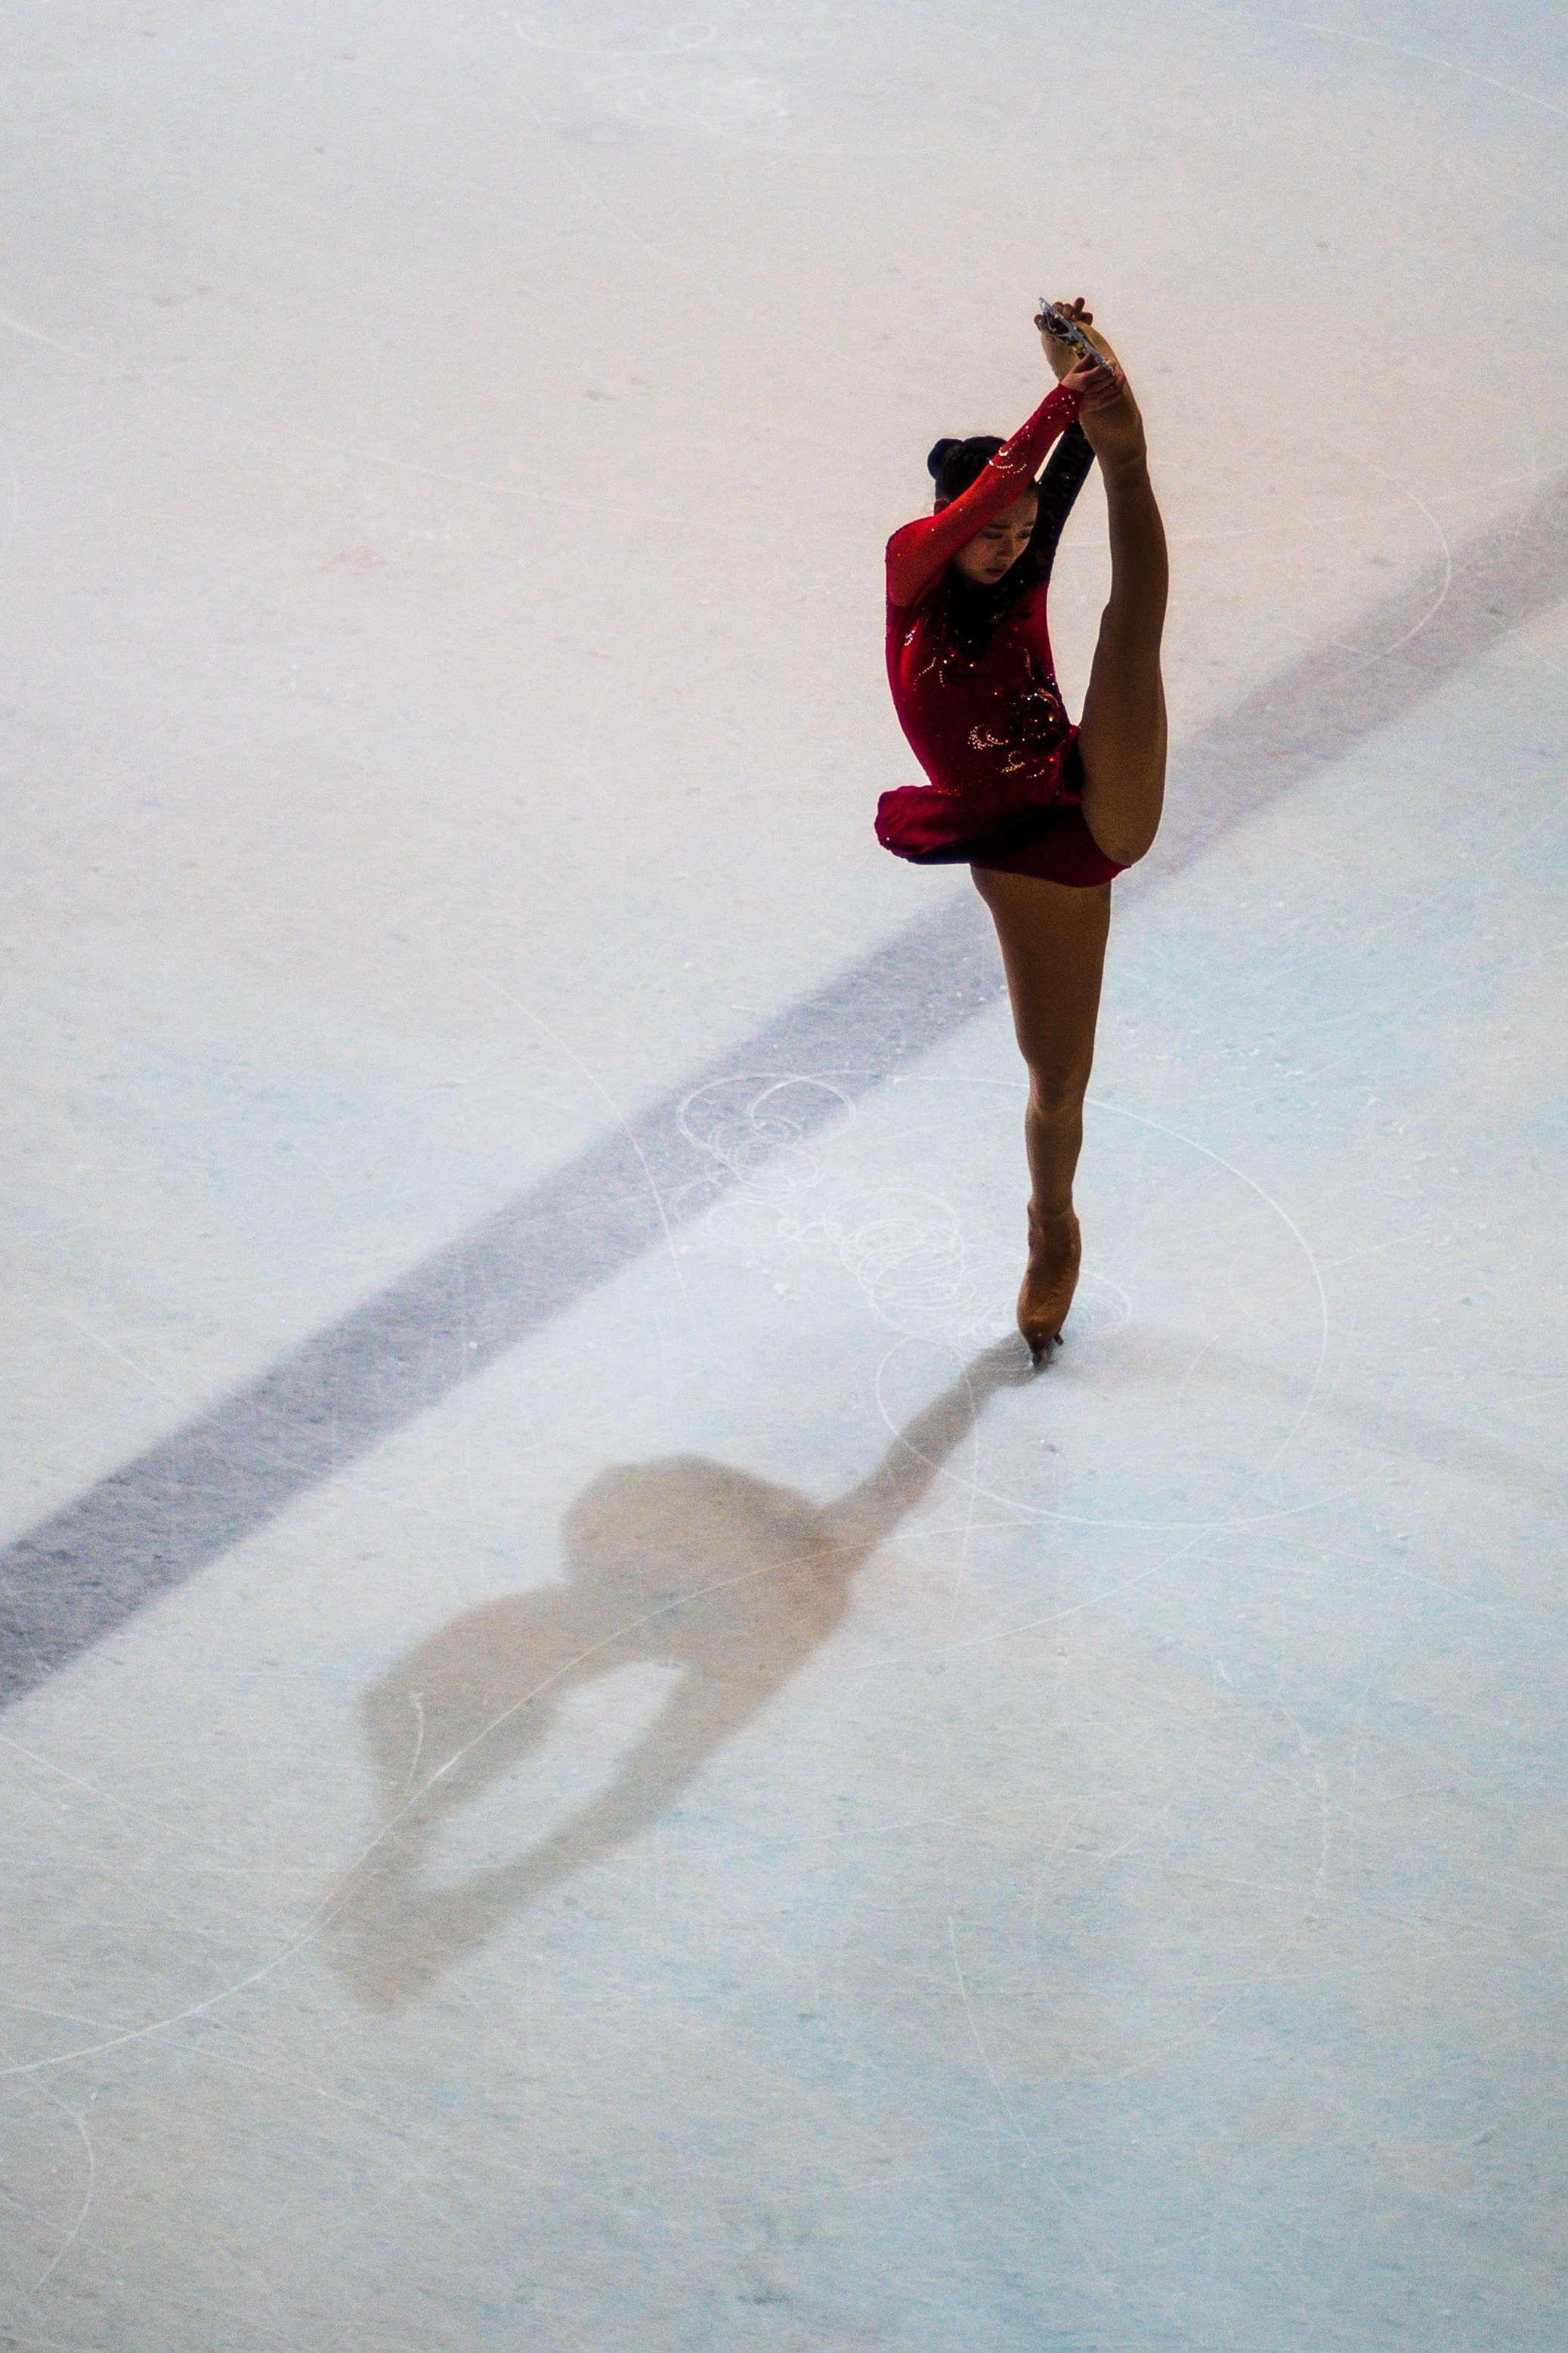 What can we learn from elite skaters?